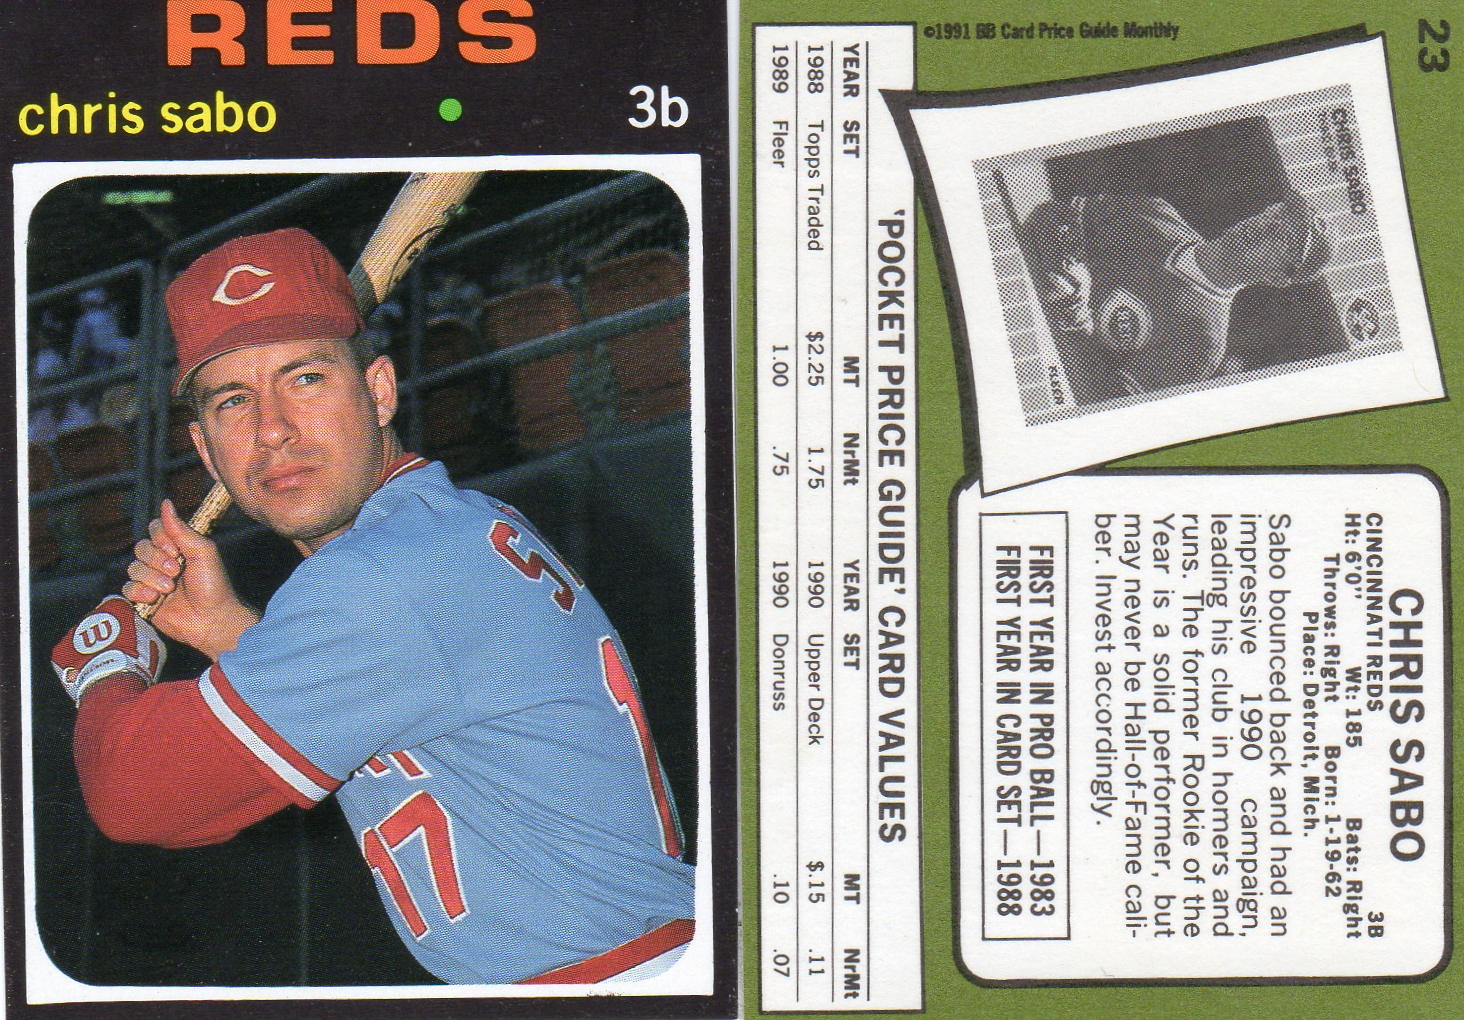 Chris Sabo Price List - Supercollector Catalog